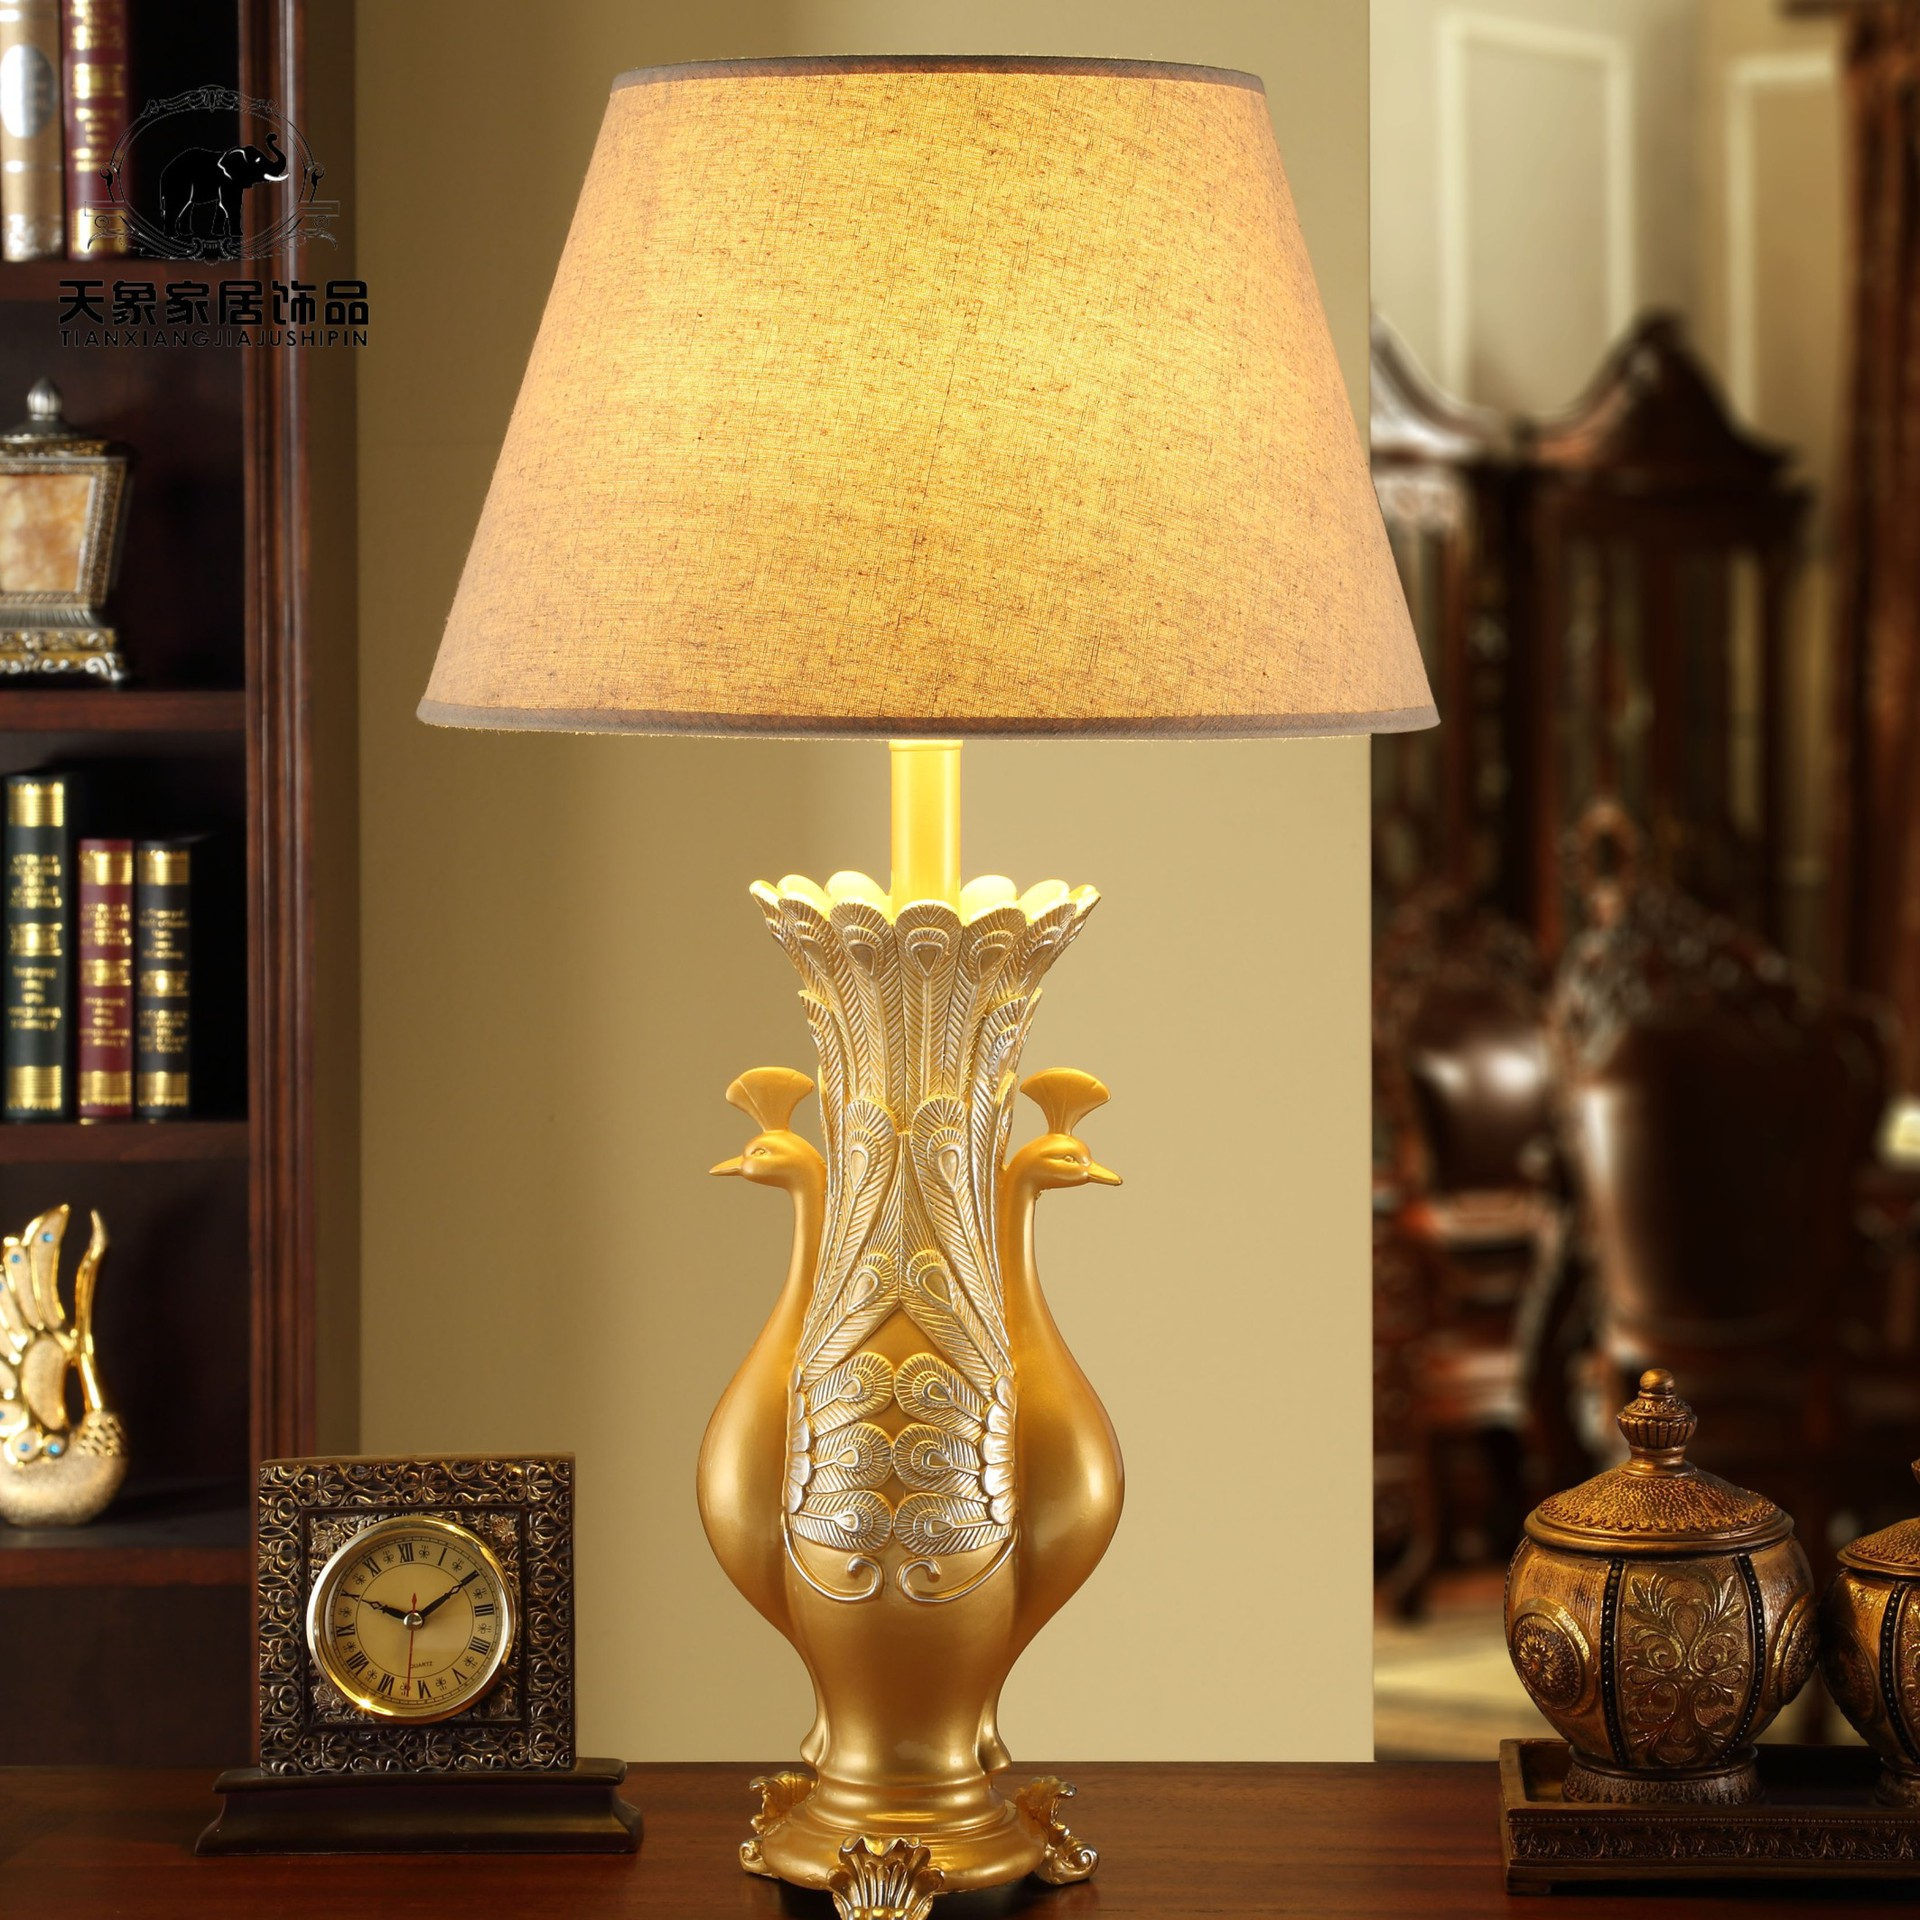 Aliexpress buy lamps table lamps europe type desk lamp aliexpress buy lamps table lamps europe type desk lamp wedding bed warm sitting room the peacock modelling lamp from reliable lamp table lamp geotapseo Gallery